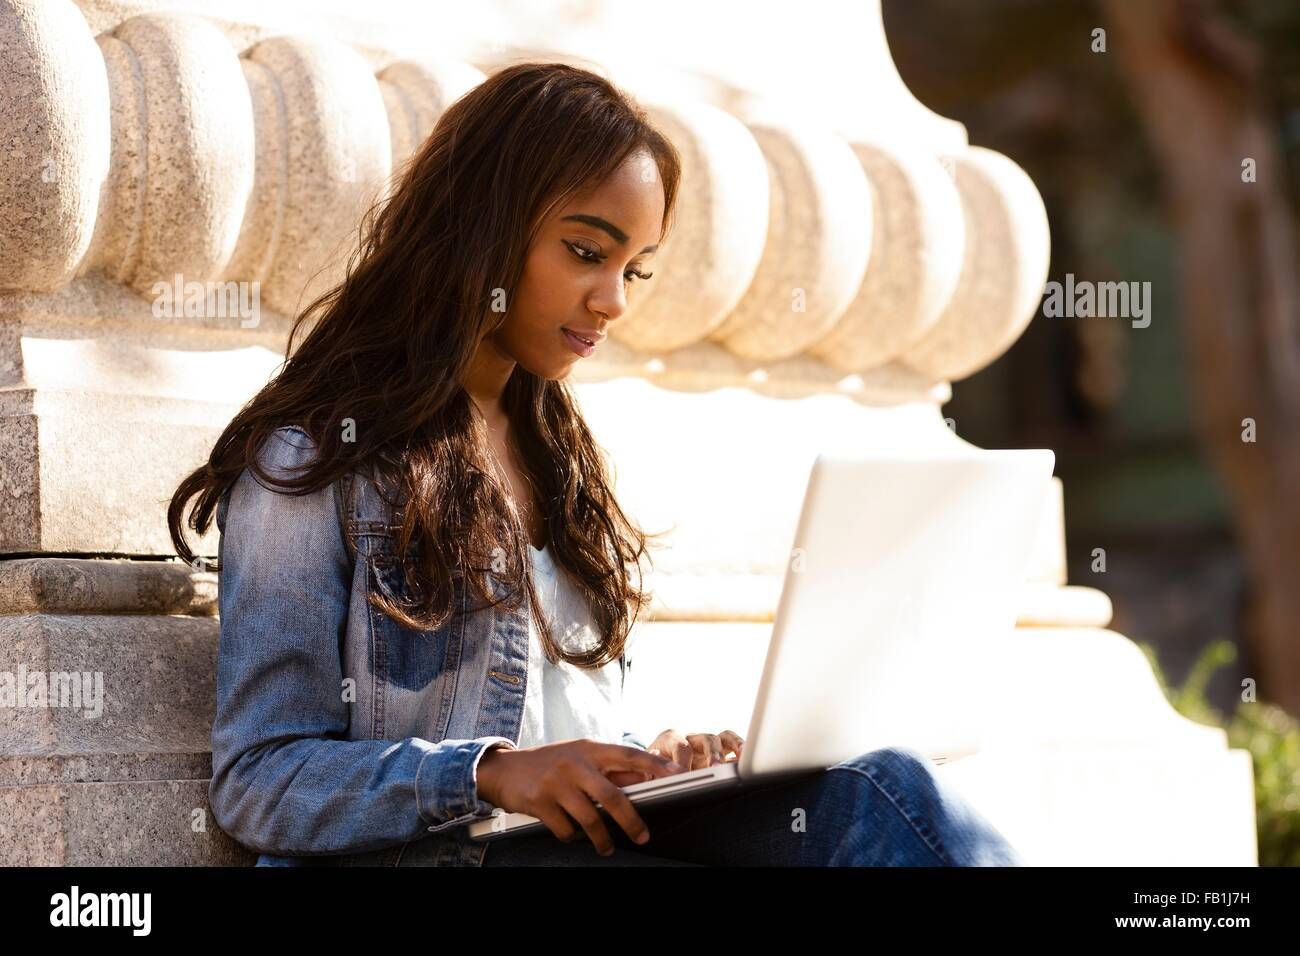 Young woman sitting leaning against stone carving looking down using laptop computer - Stock Image